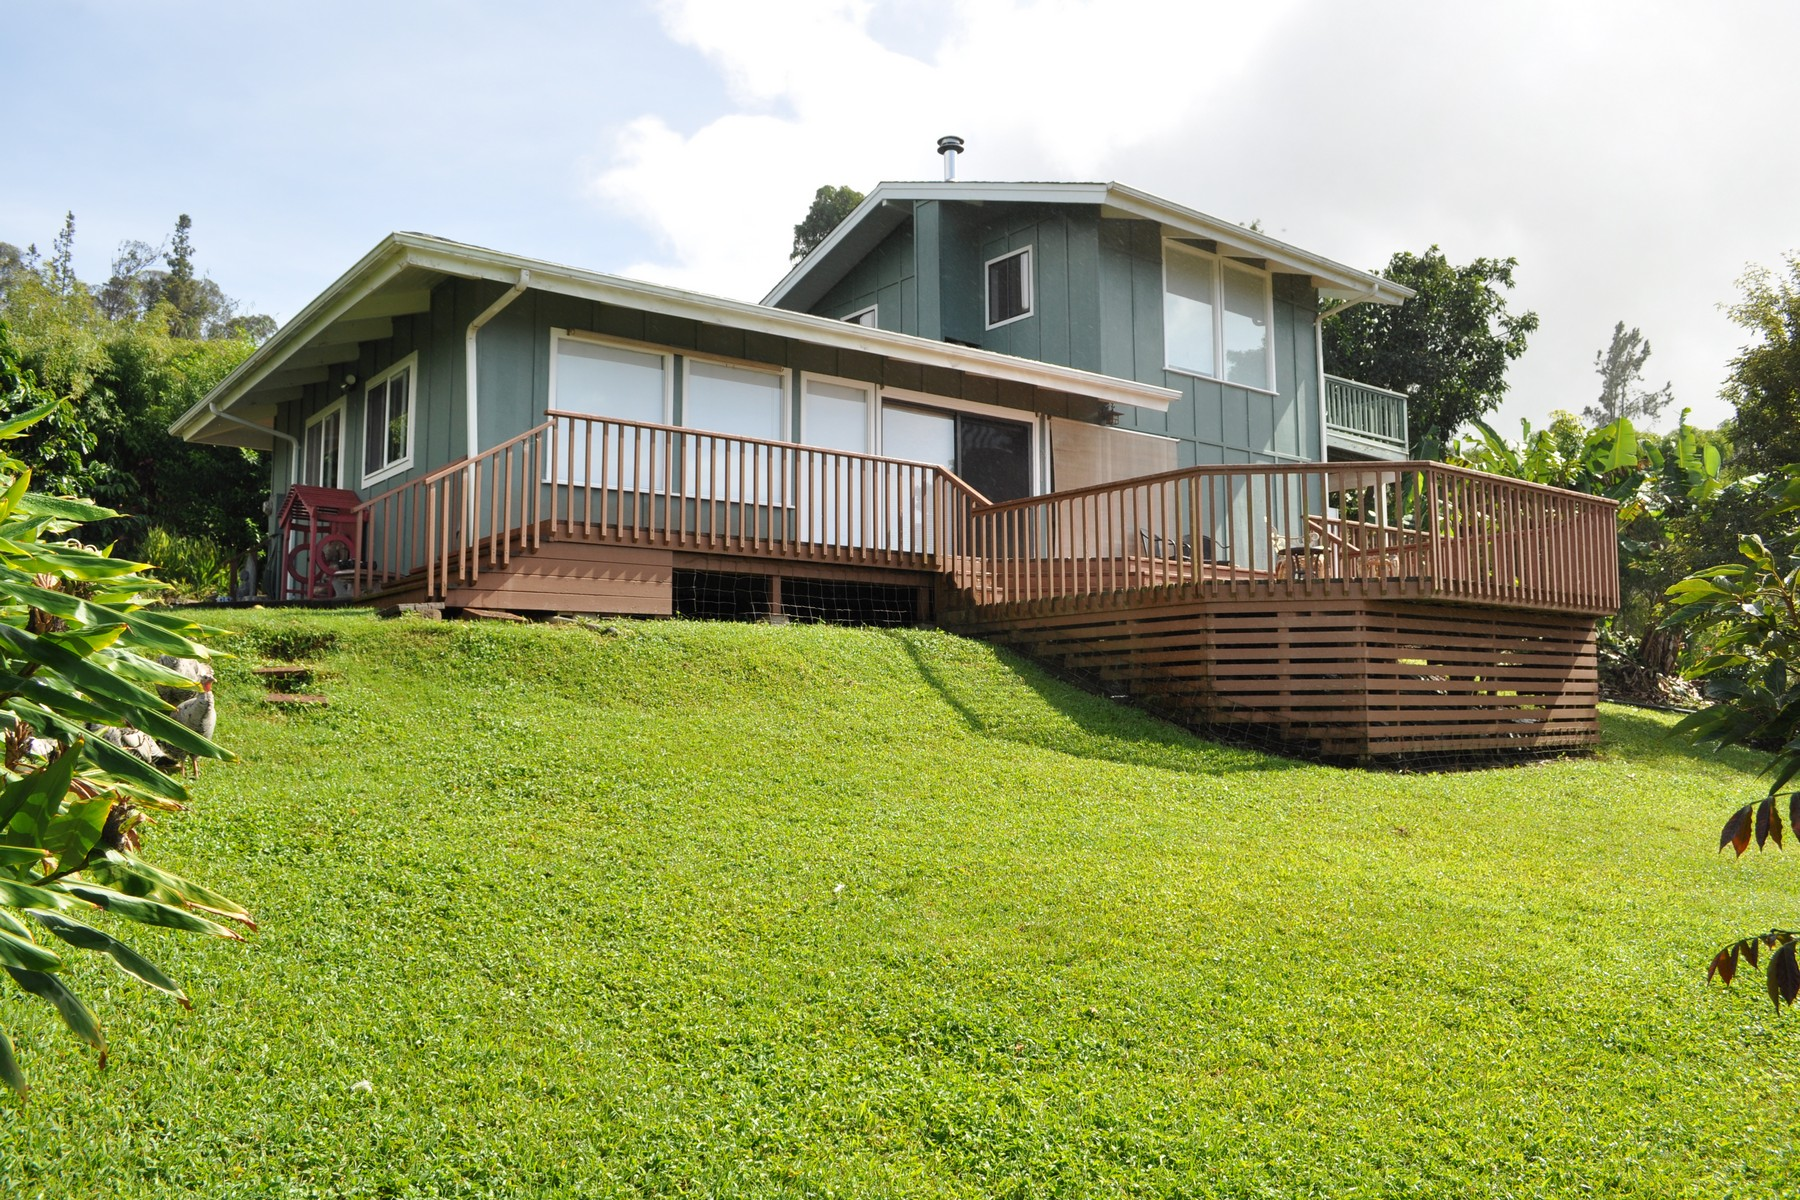 獨棟家庭住宅 為 出售 在 Privacy & Seclusion On 8 Permacultured Acres 1690 Piiholo Road Makawao, 夏威夷, 96768 美國